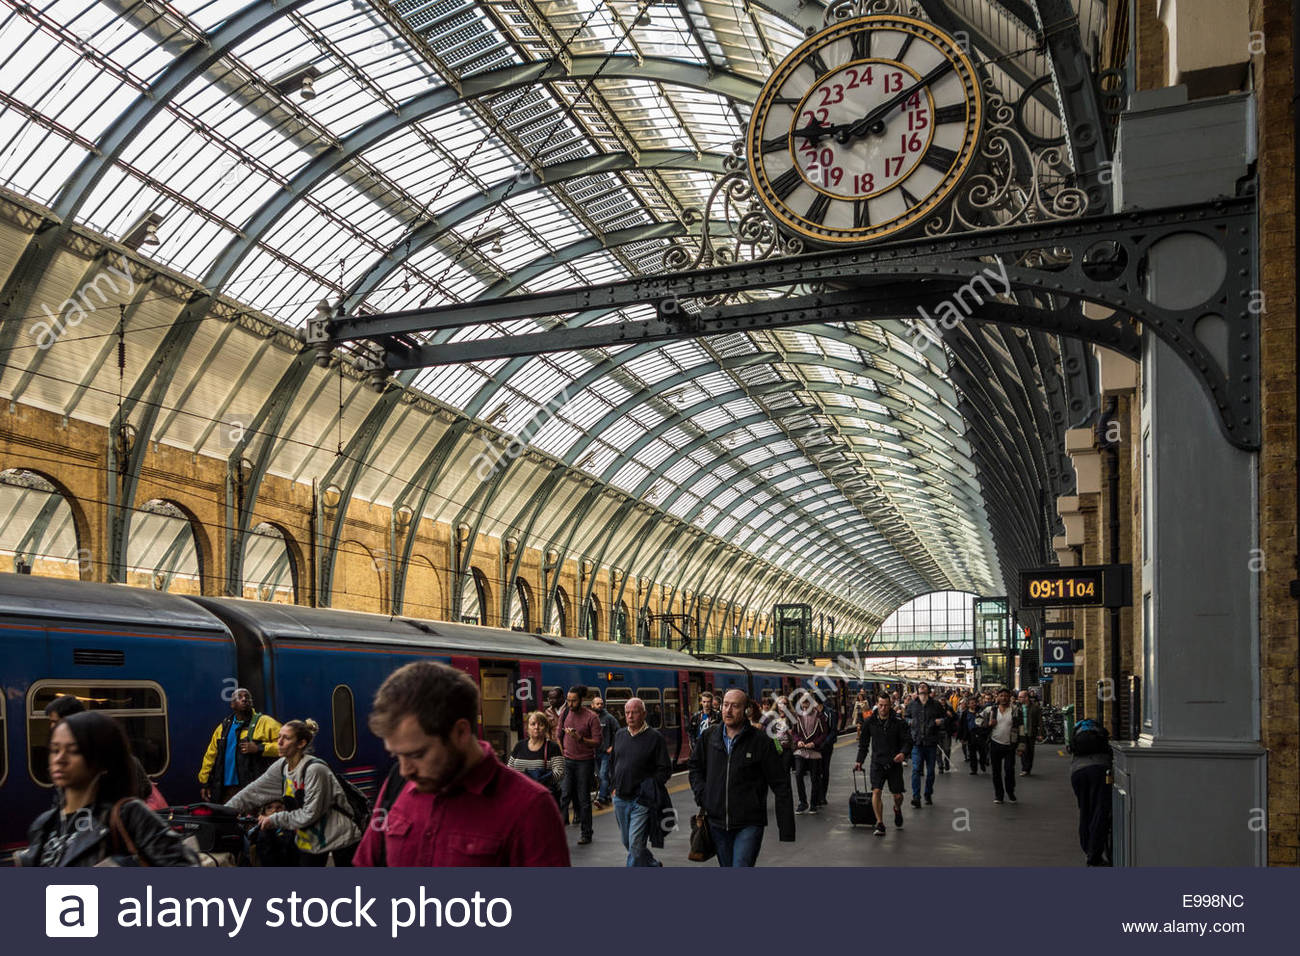 Passengers leave the train at Kings Cross railway station, London, England - Stock Image